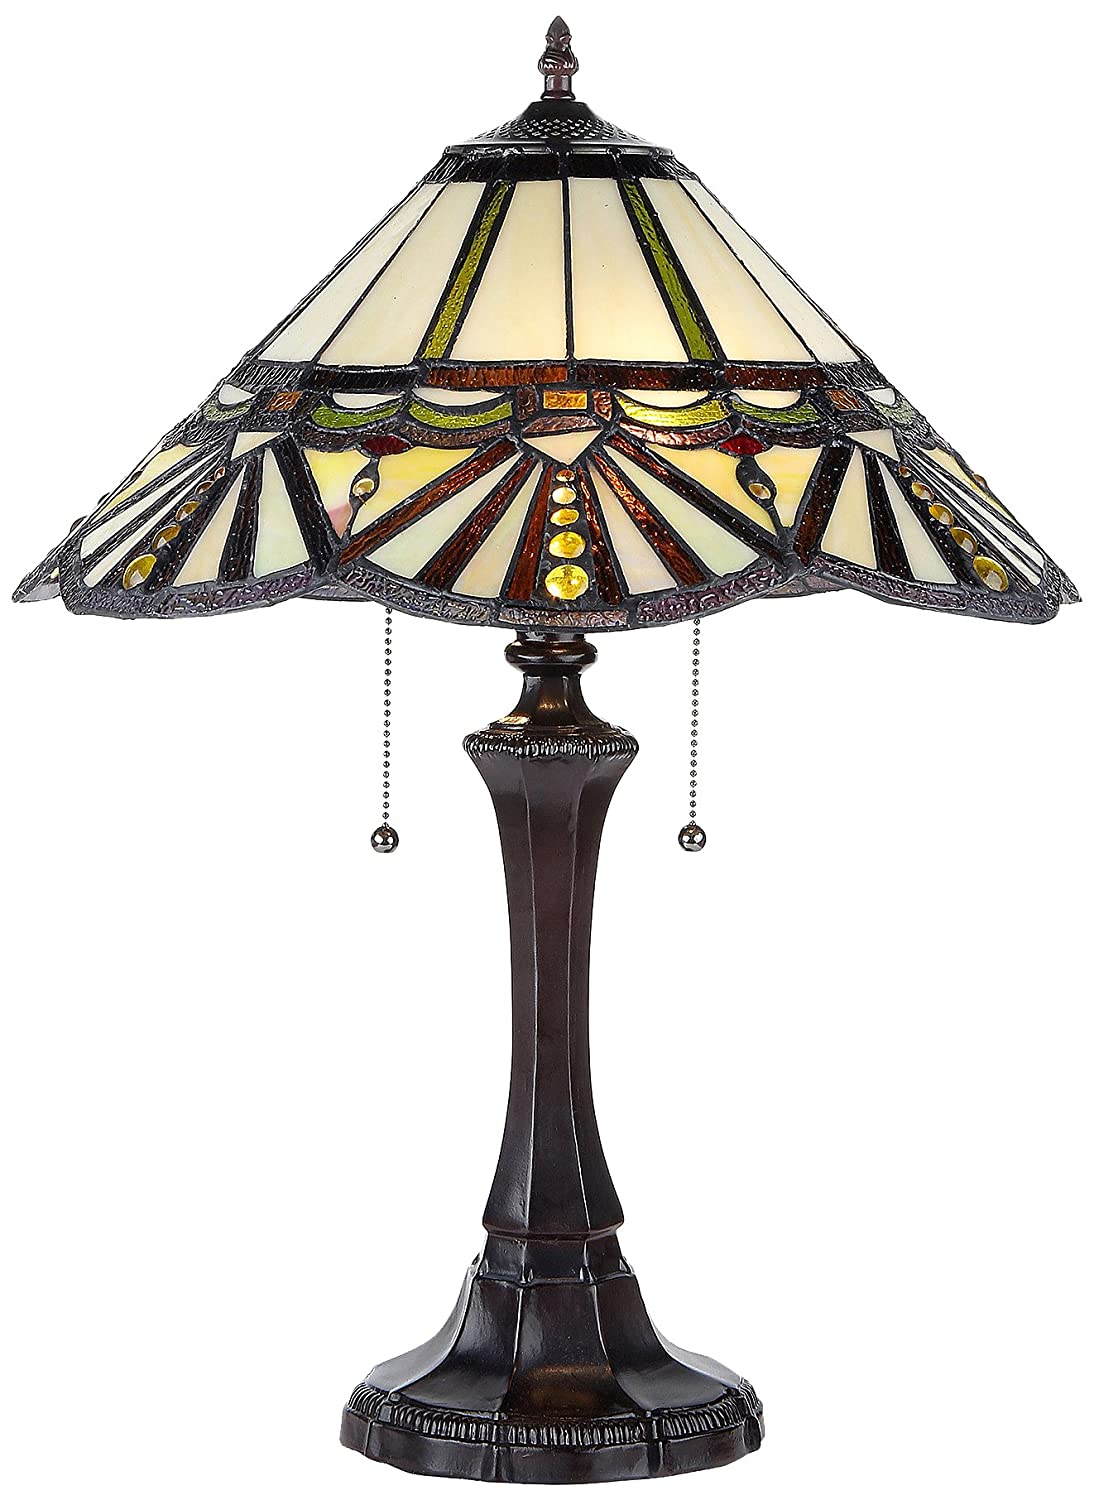 Chloe Lighting CH33251GM16-TL2 York Tiffany-Style Vantage 2 Light Table Lamp 16 Shade 8 lights vintage edison lamp shade multiple adjustable diy ceiling spider lamp pendent lighting chandelier modern chic easy fit